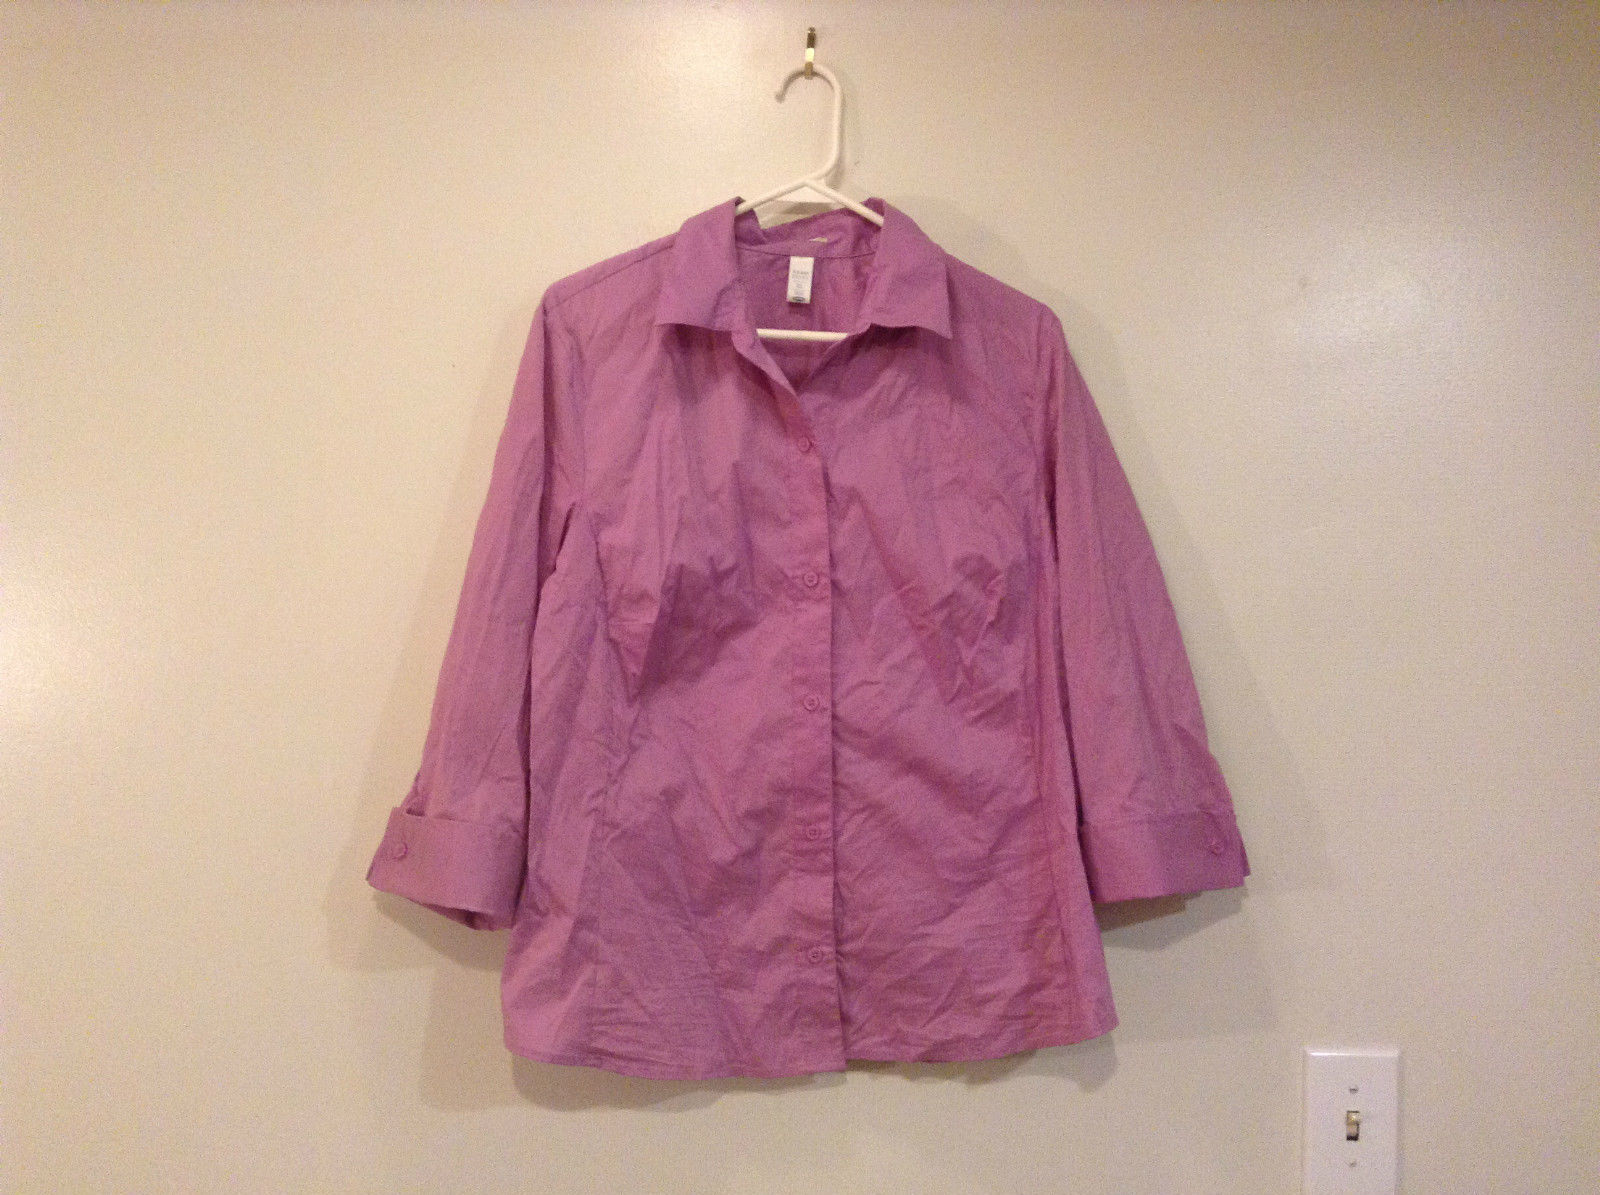 Violet Front Button Up Old Navy Stretch Shirt Size XL